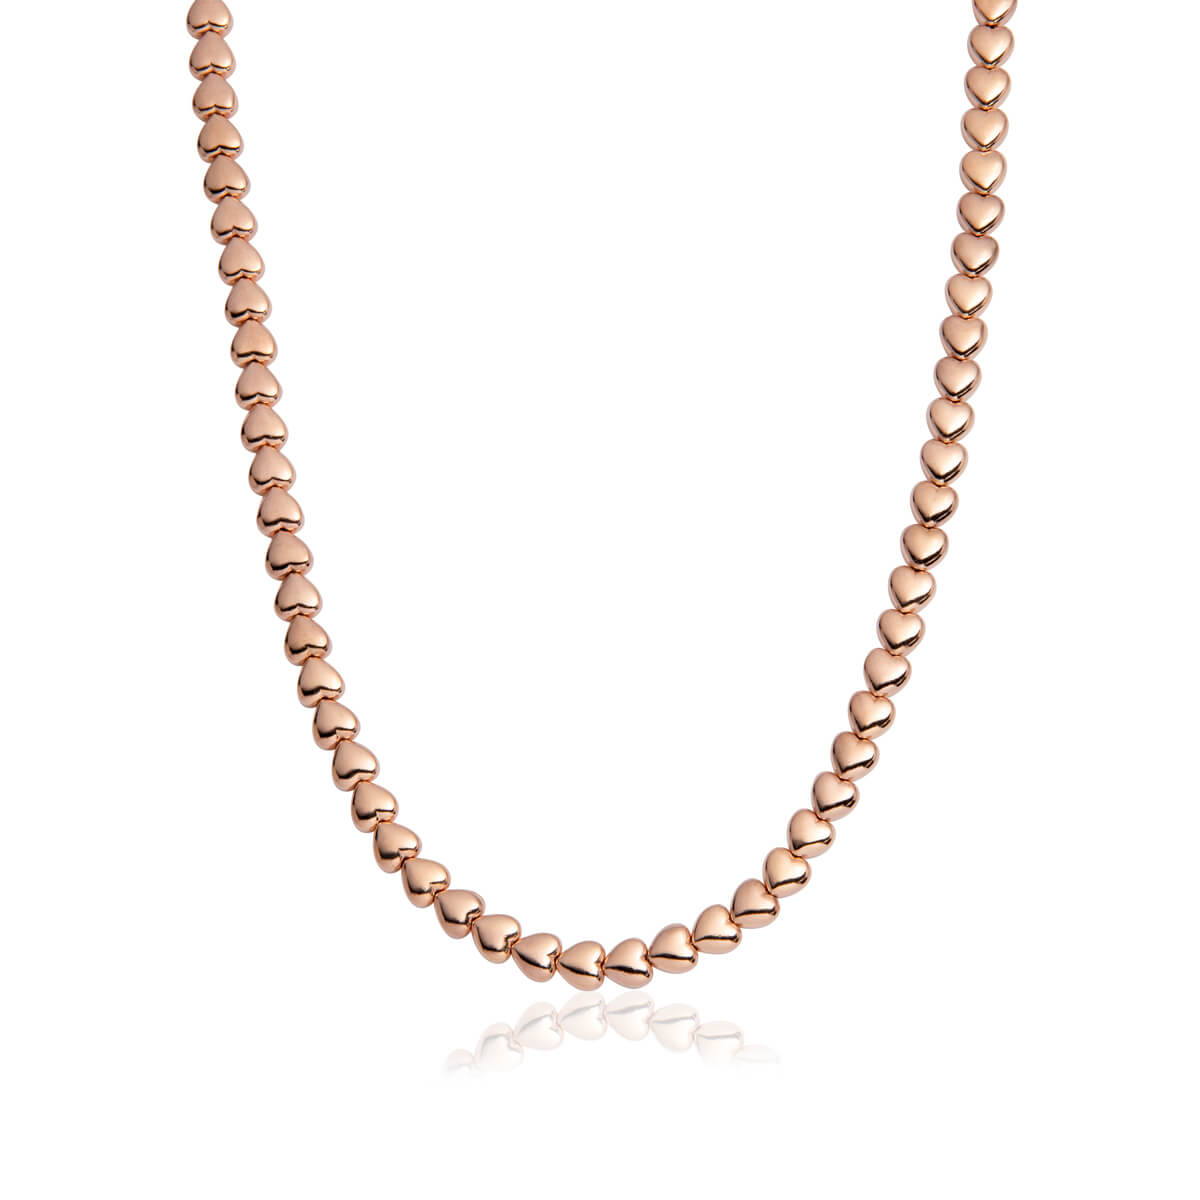 Selected Heart Chain Necklace (Rose Gold)